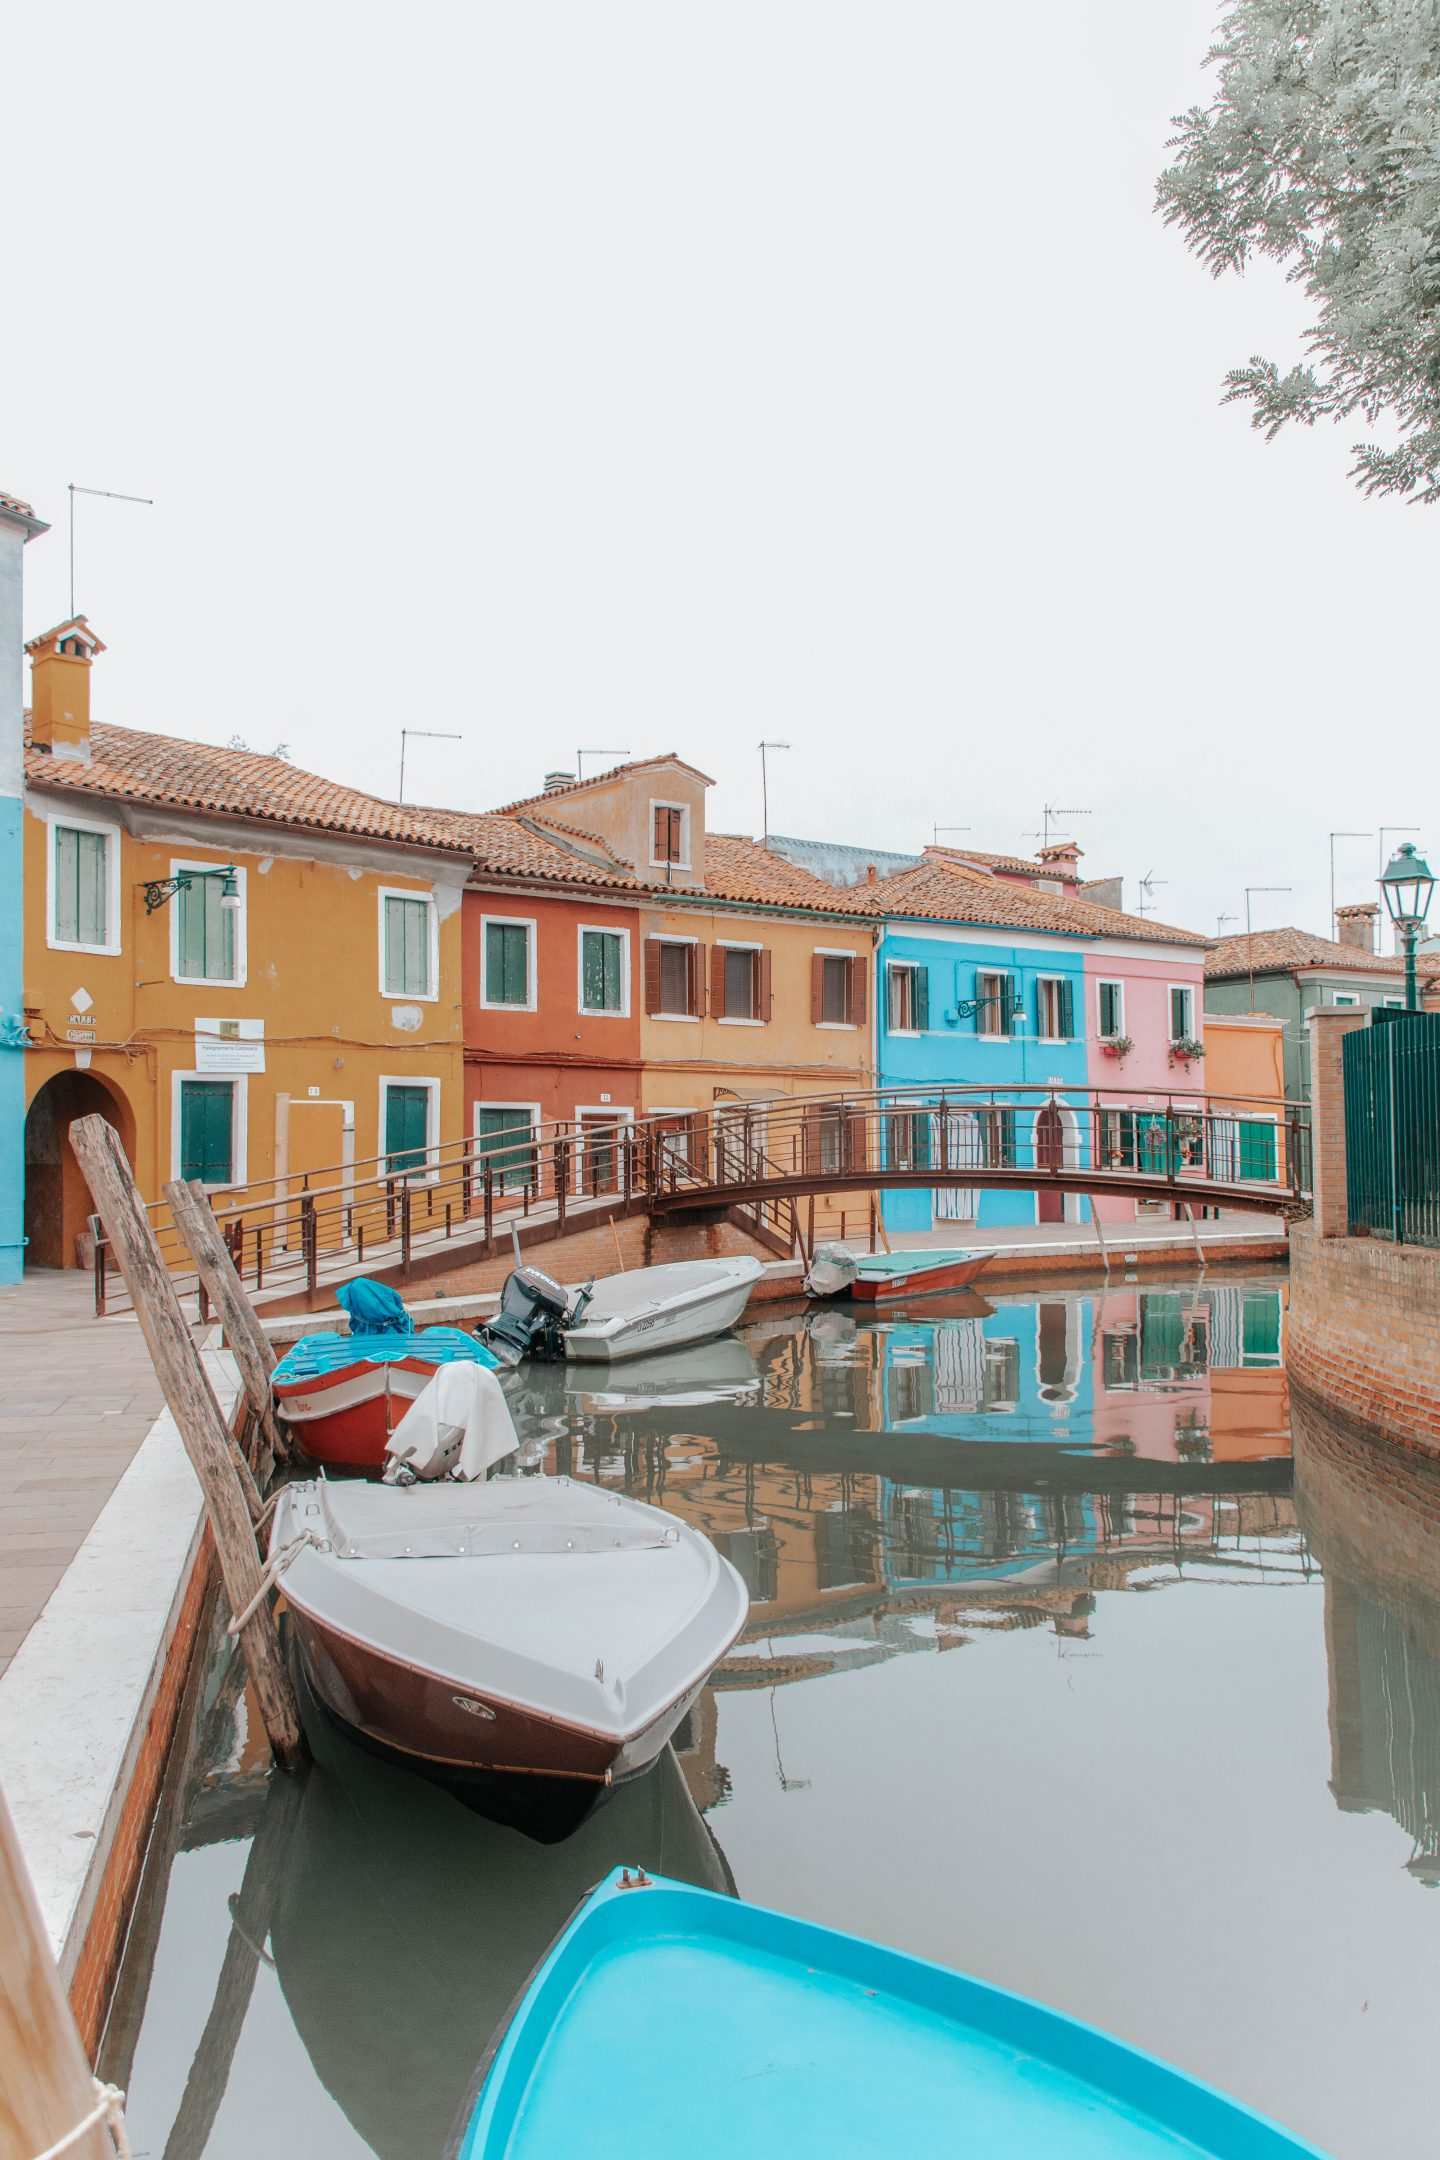 Colorful buildings along a canal in Burano